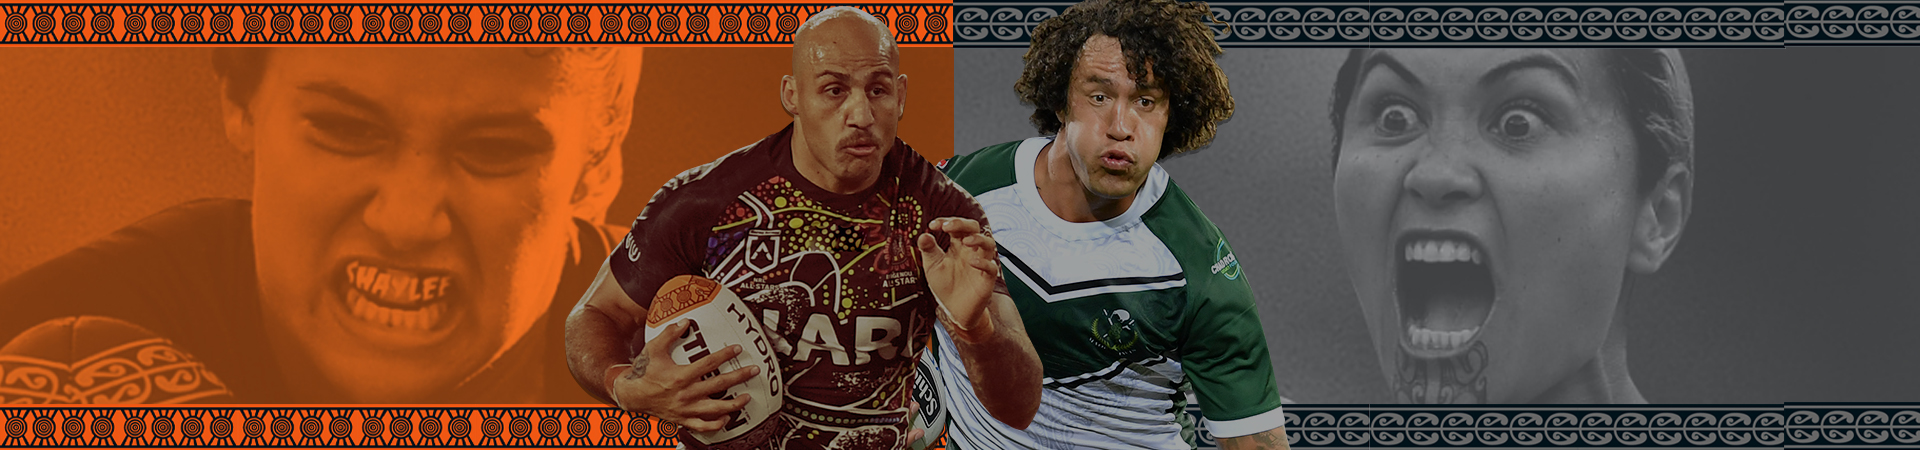 Classic Sportswear partners with the NRL for Indigenous and Maori All Stars